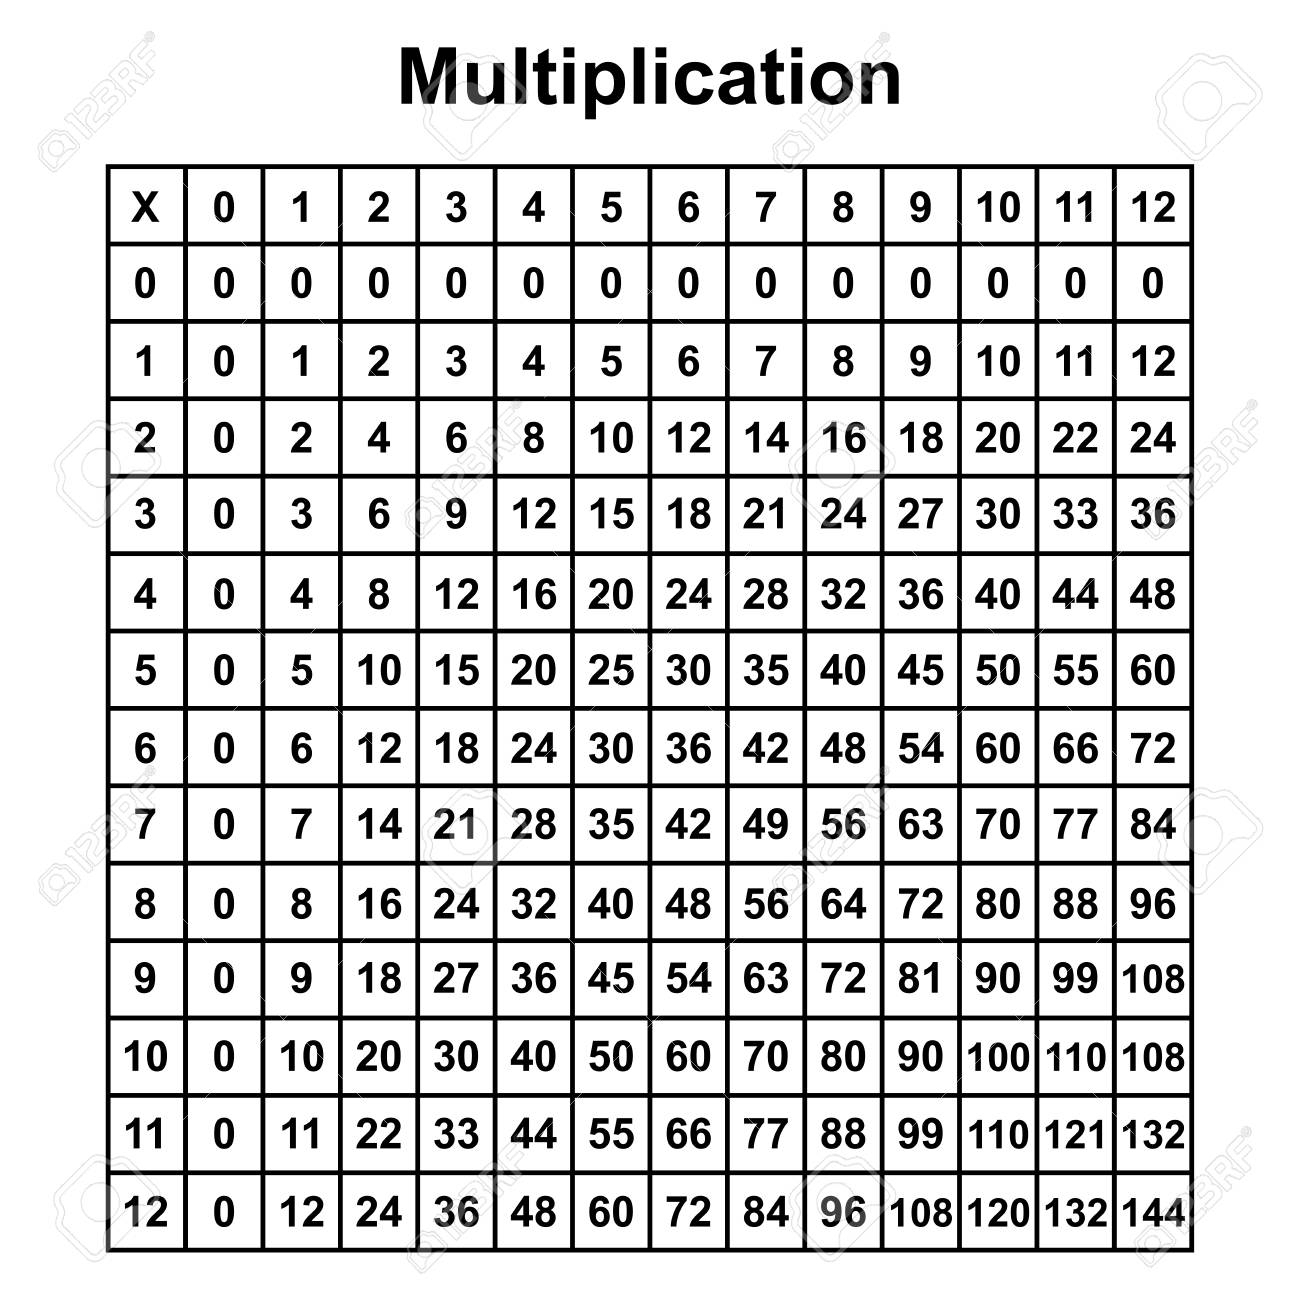 Multiplication Table Chart Or Multiplication Table Printable.. inside Printable Multiplication Table Chart